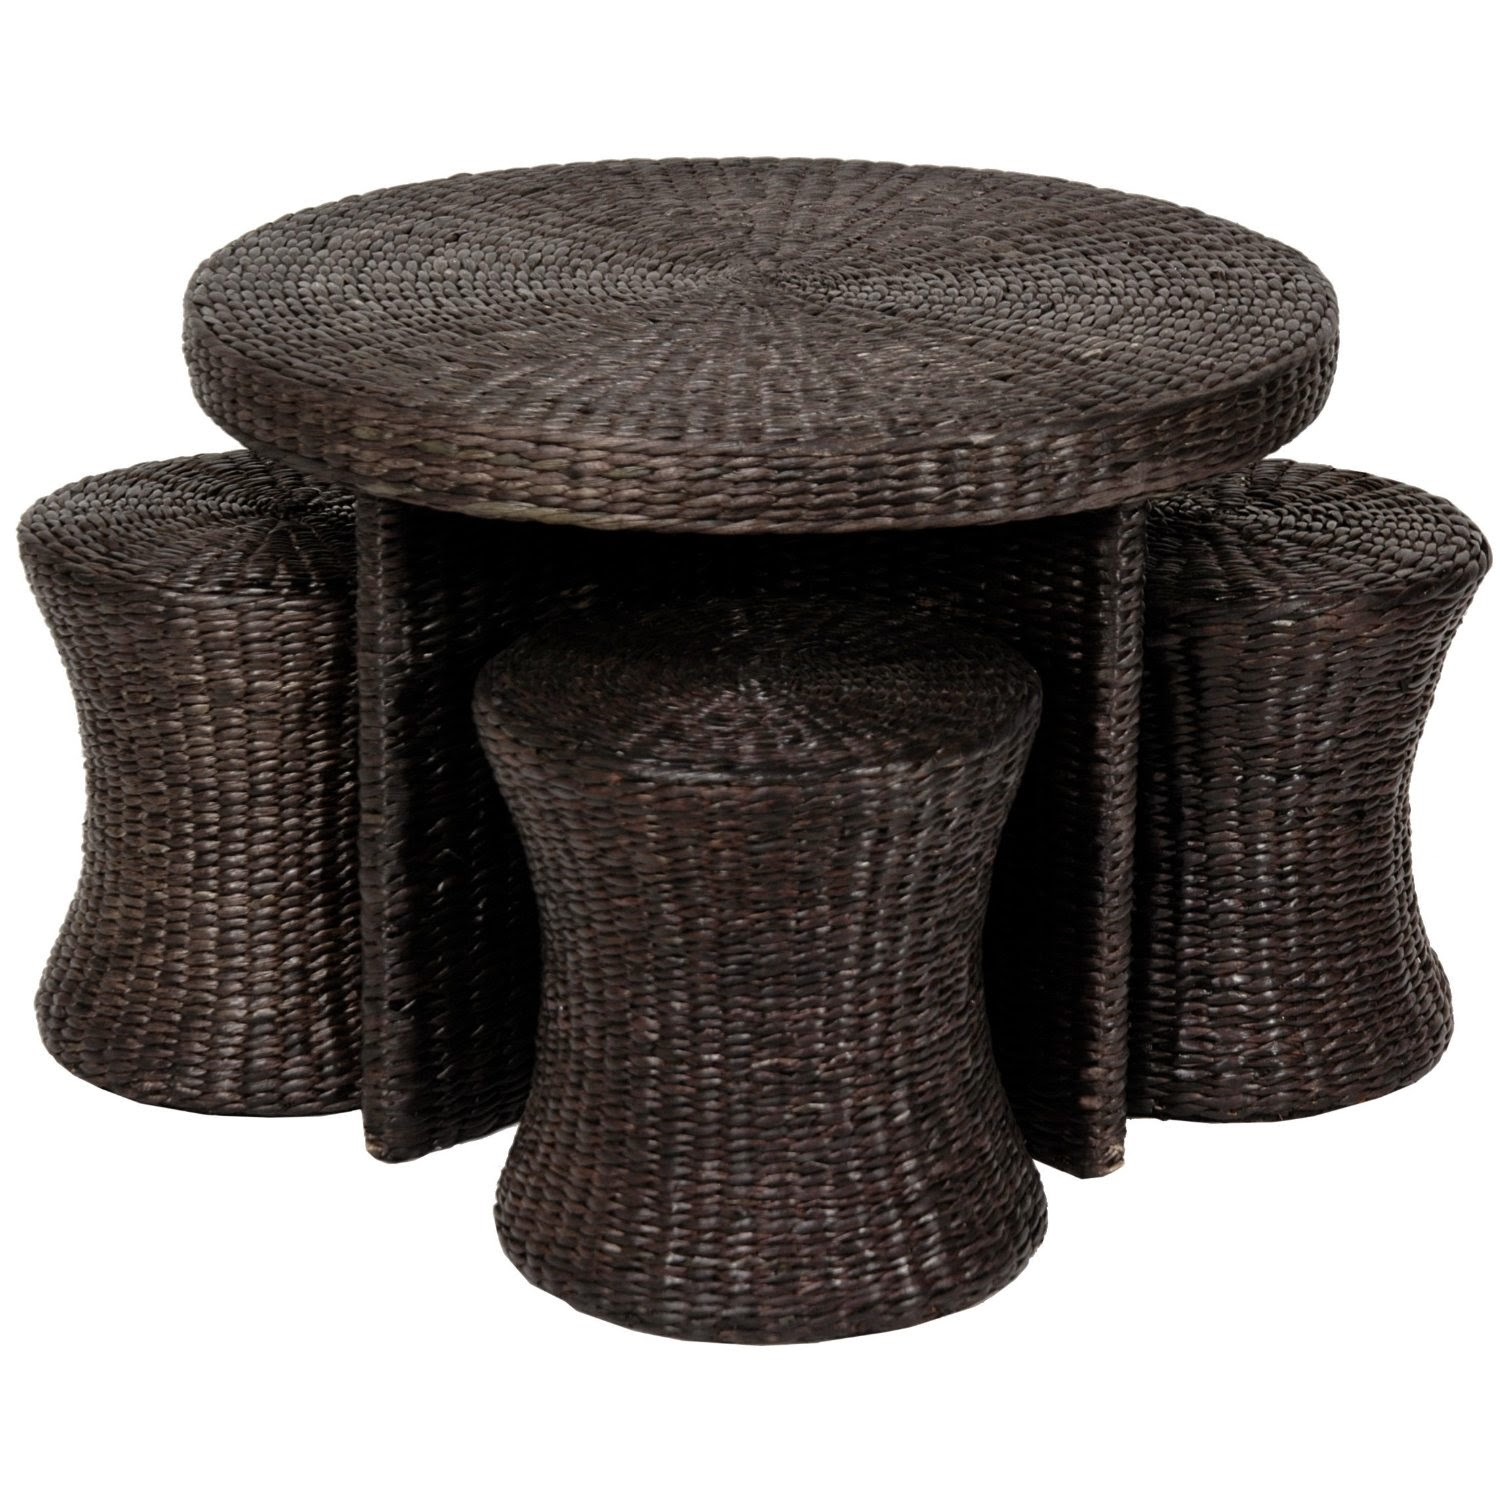 The Best Coffee Table With Stools Oriental Coffee Table With Stools